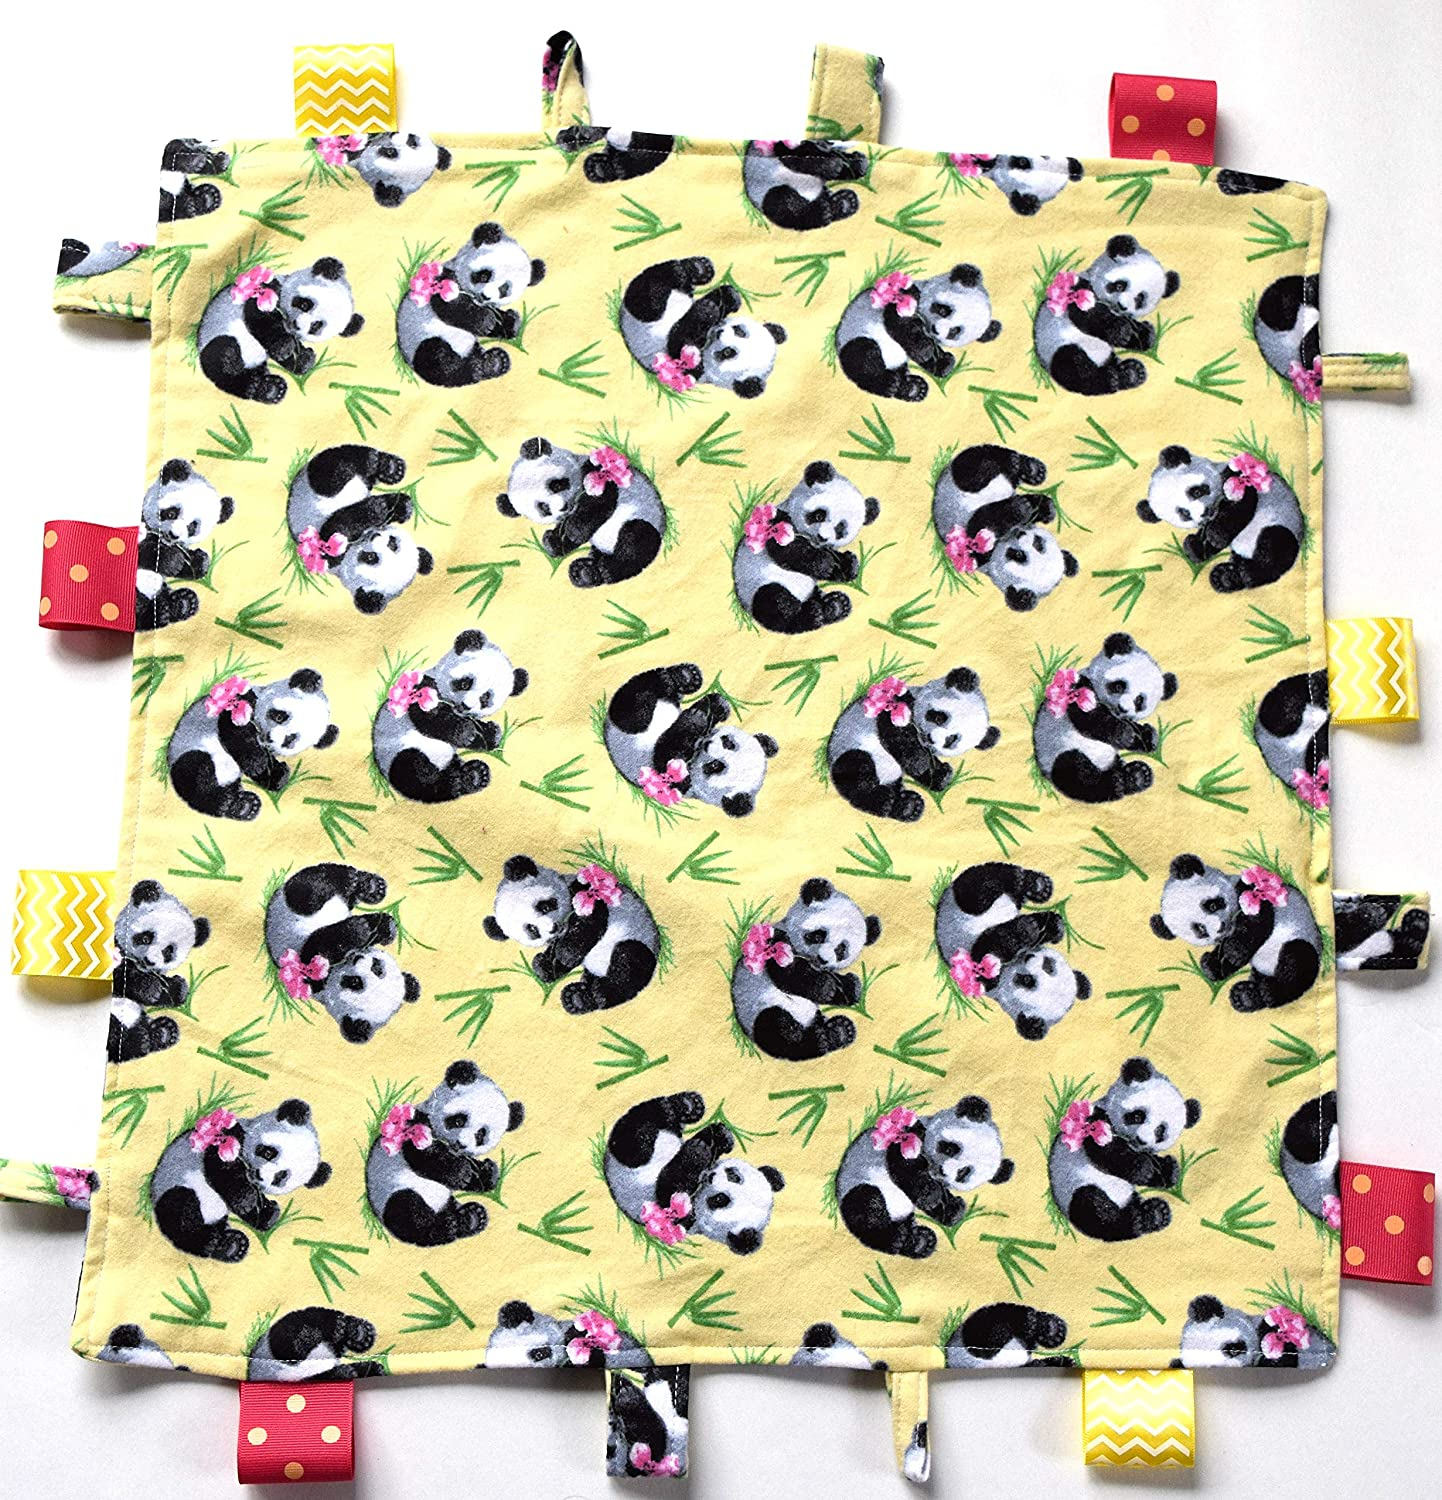 Mini Blanket,Soft Yellow Flannel,Pink Flowers Green Bamboo Panda Baby Comfy Blanket